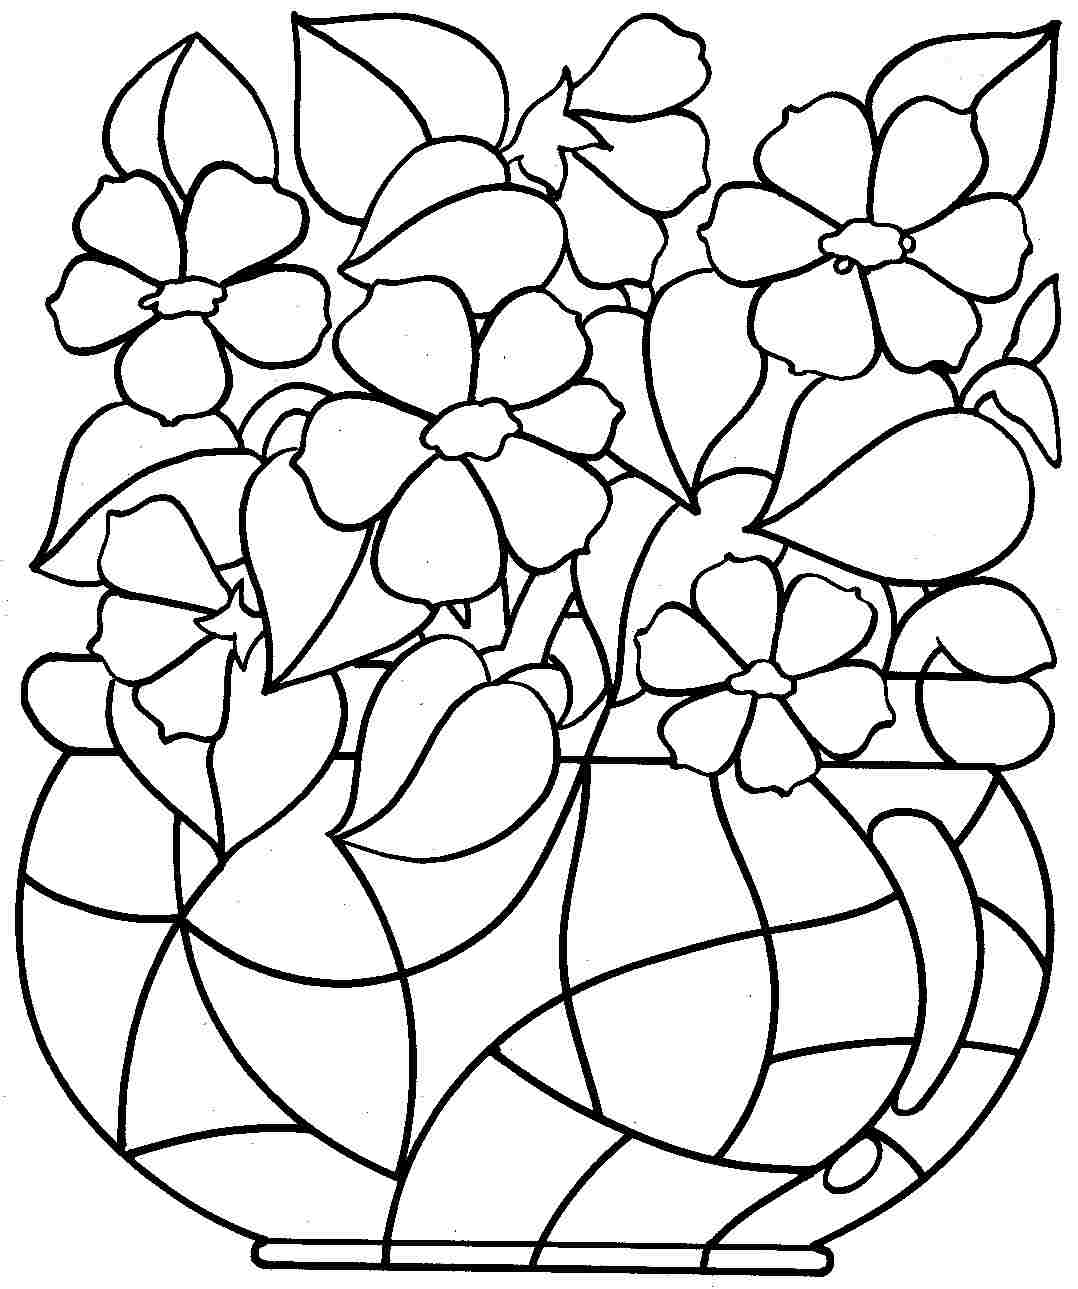 1078x1289 Cute Flower Coloring Pages For Girls Good Draw Photo Printable